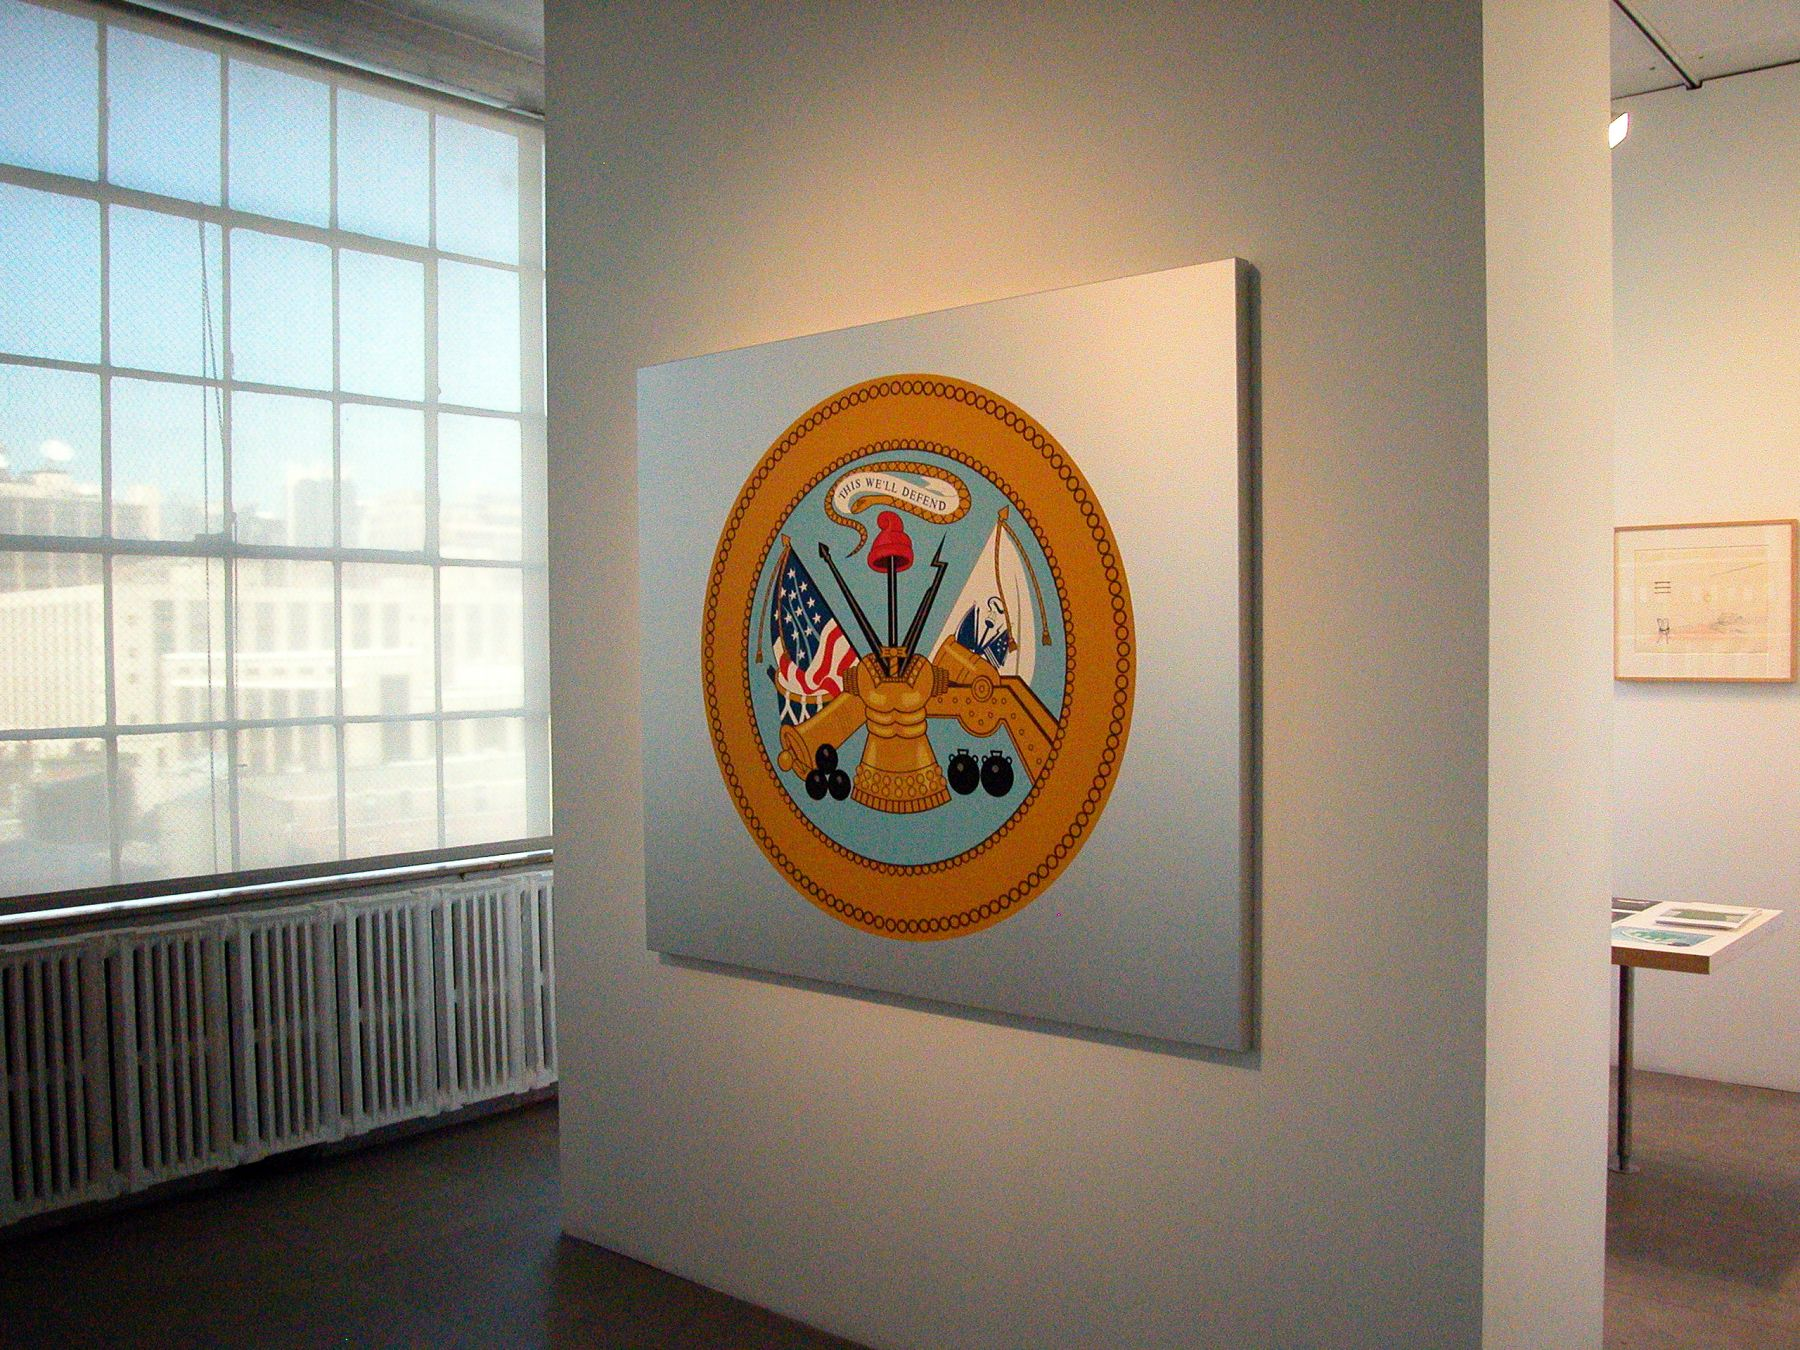 Untitled, 2005, silkscreen on aluminum, 55.12 x 62.99 x 2.17 inches, Installation view, Greene Naftali, New York, 2005